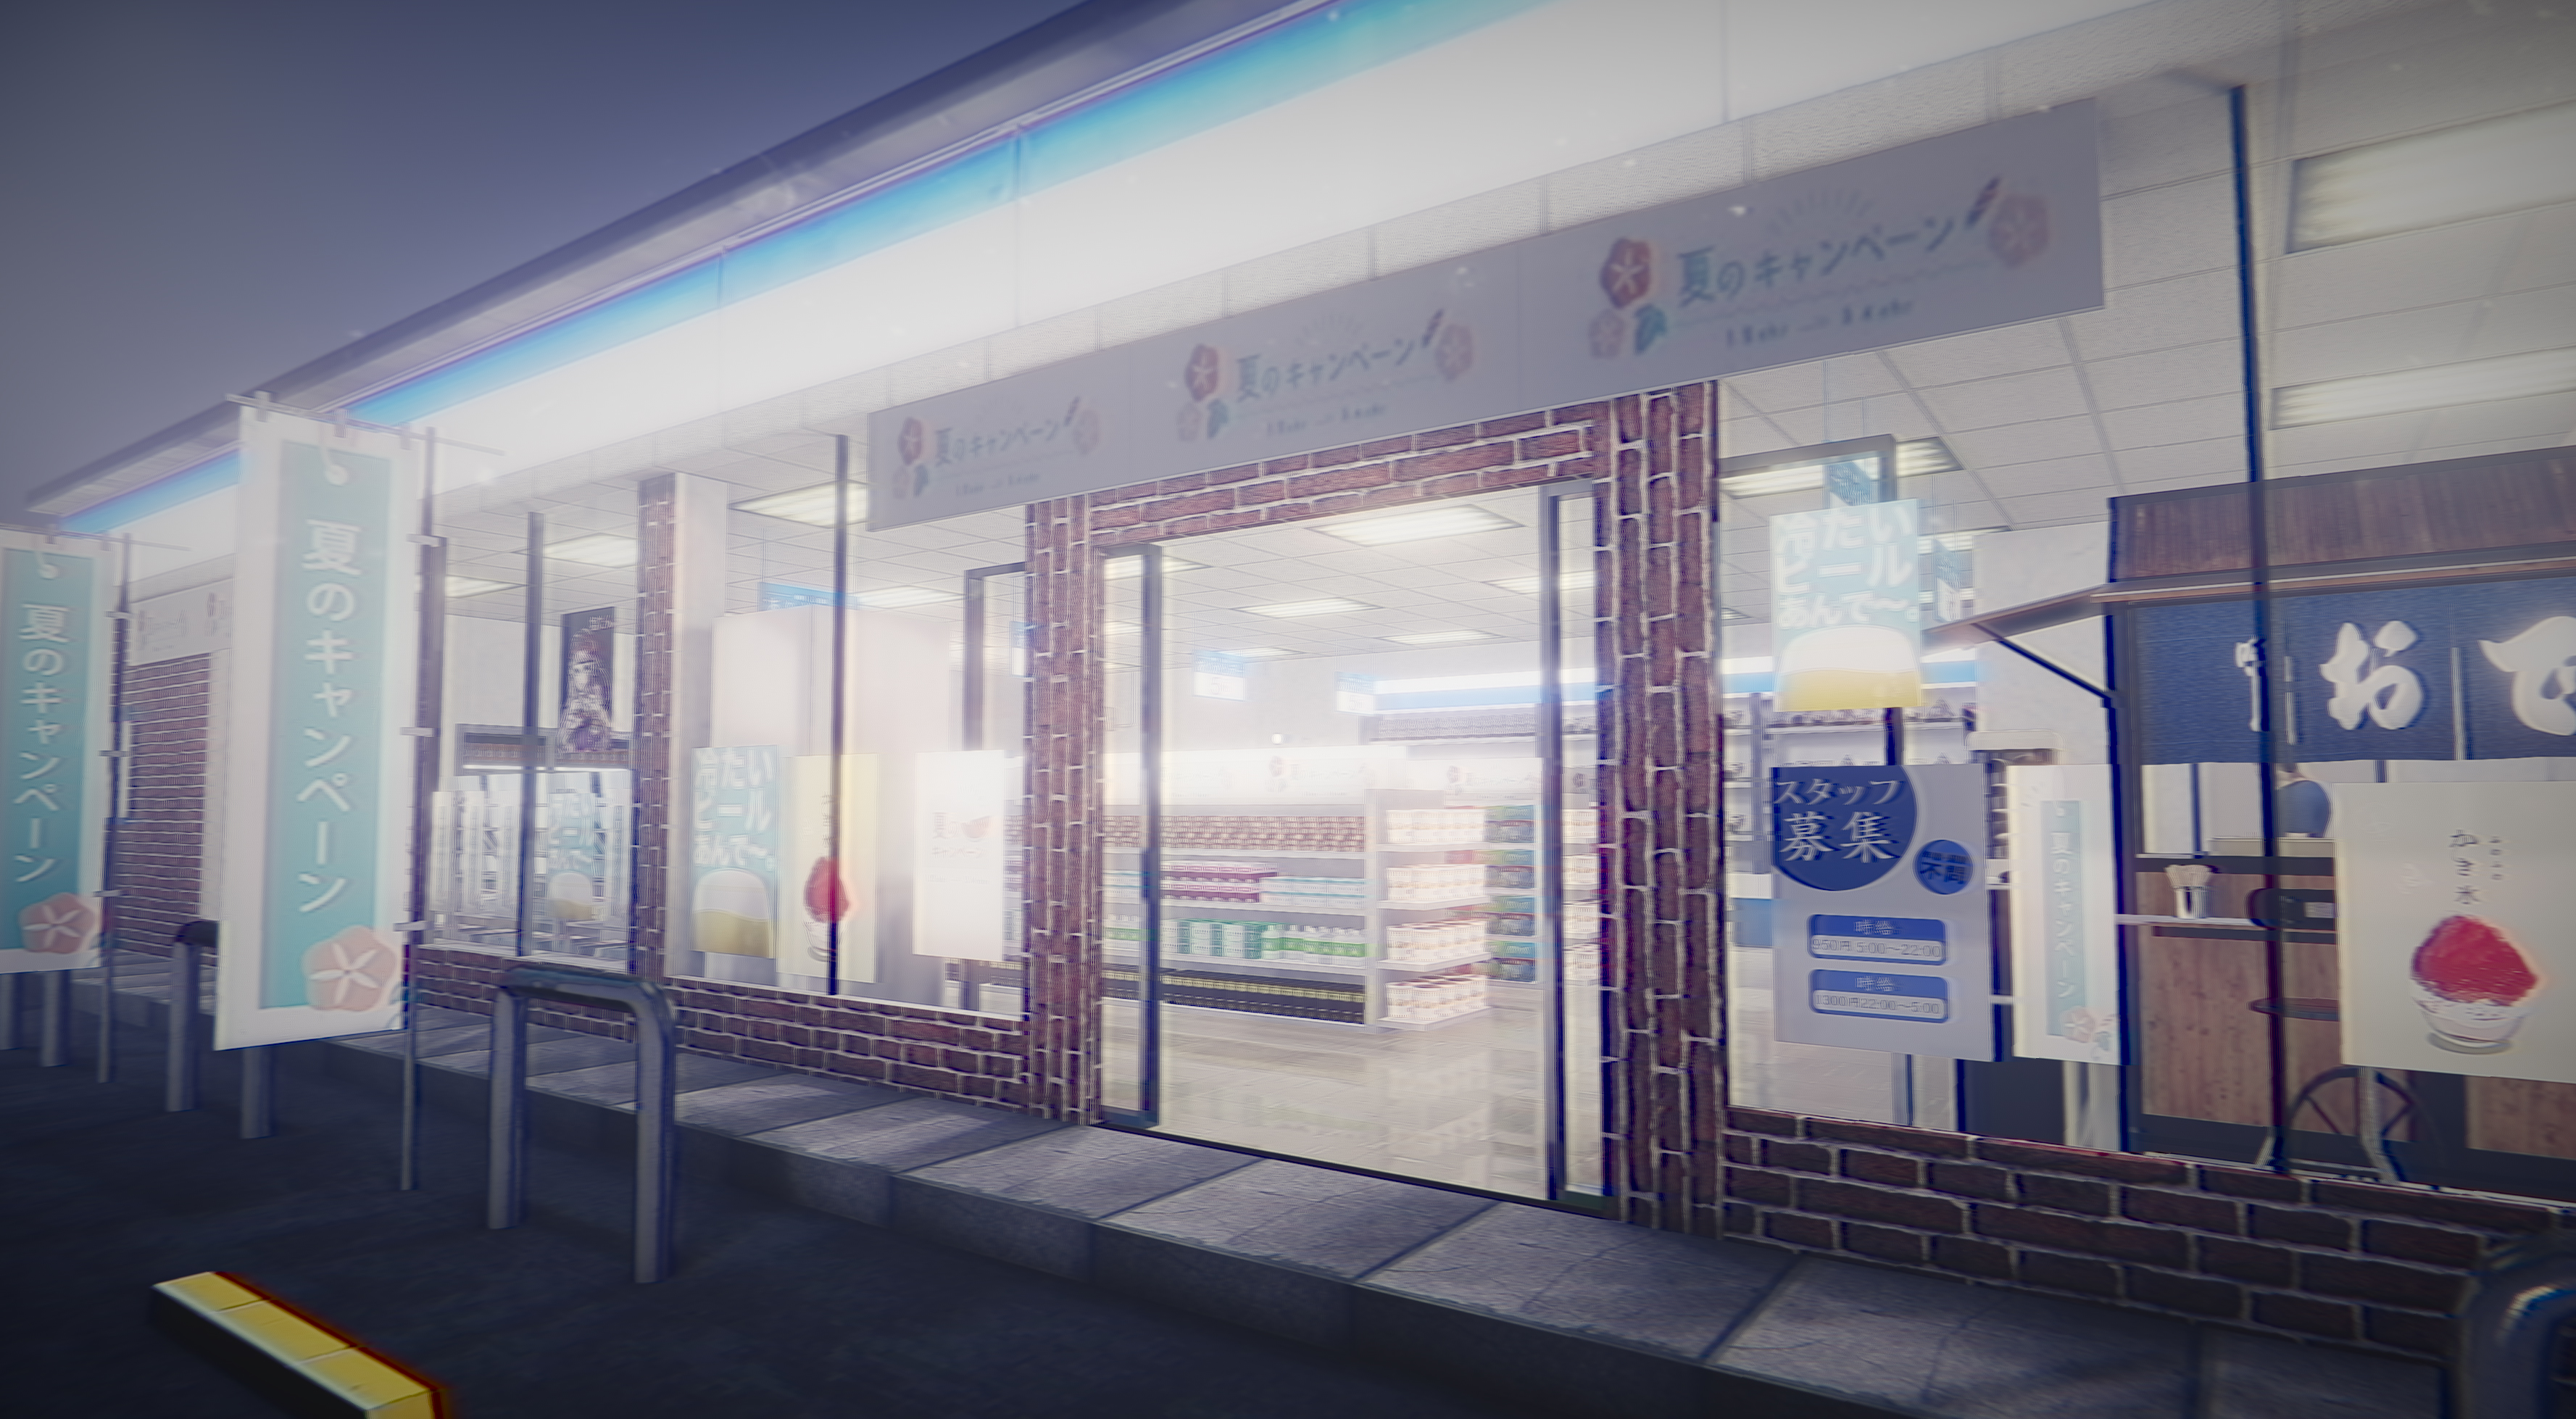 The entrance to a convenience store